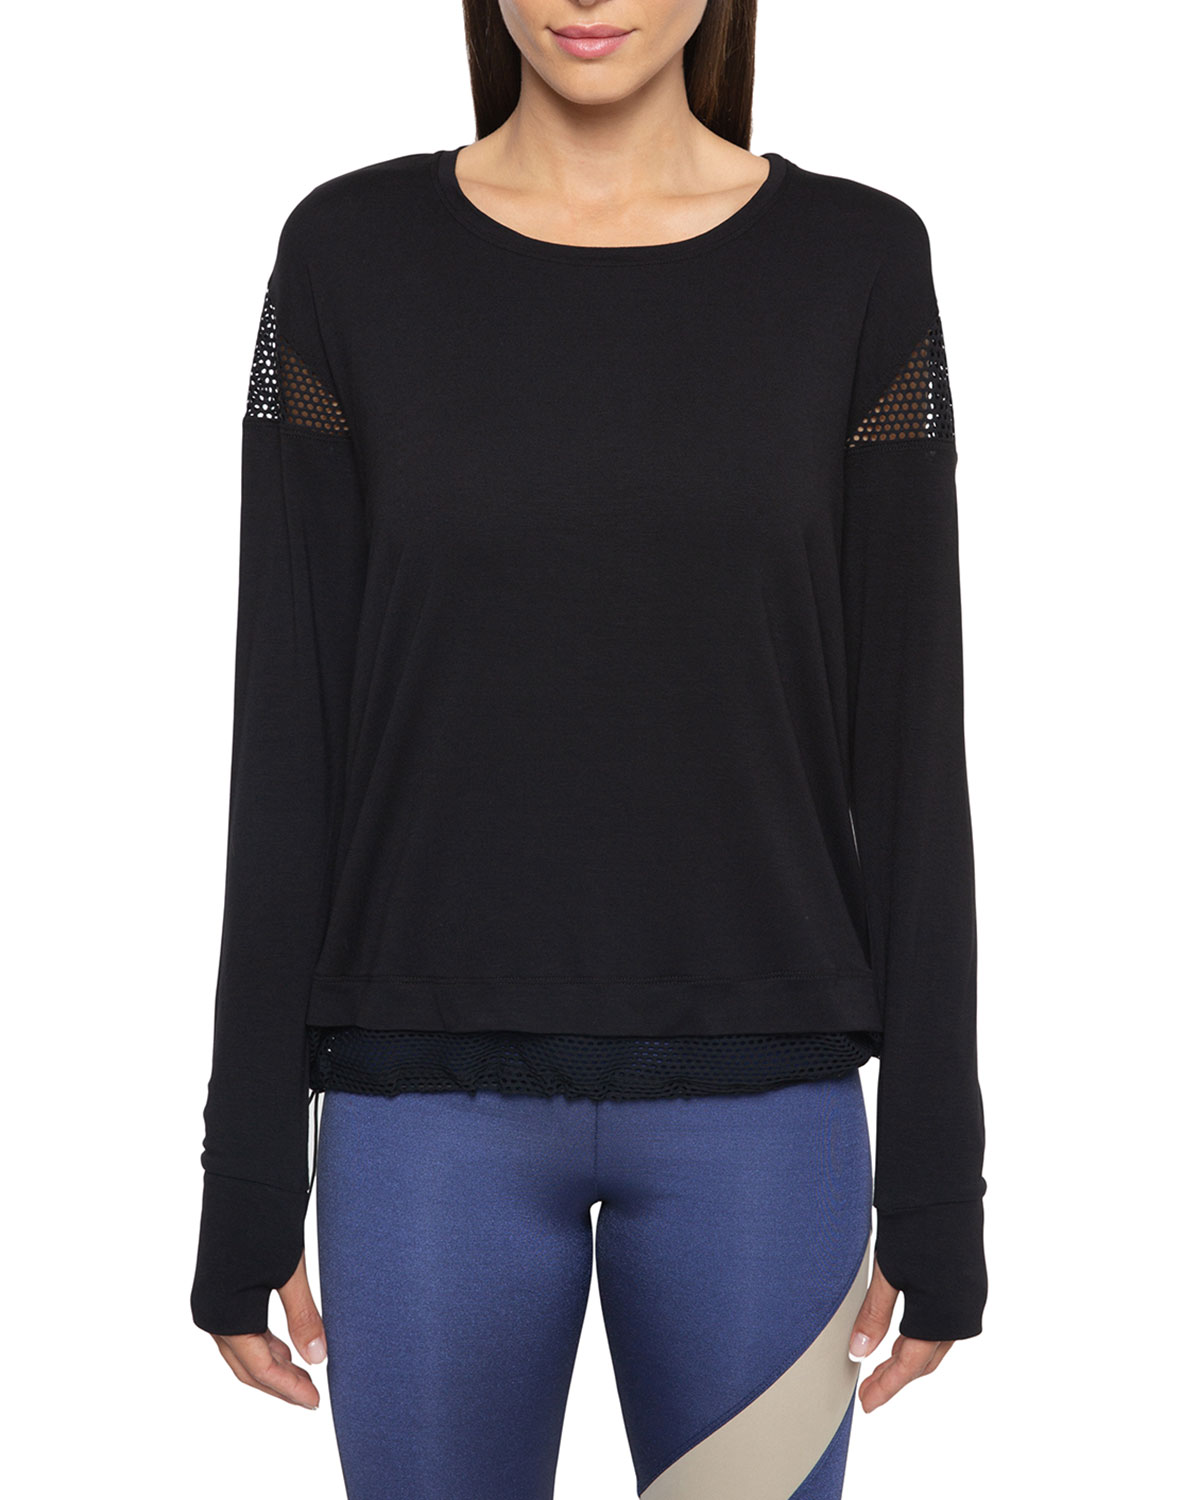 Koral Pasto Long-Sleeve Top